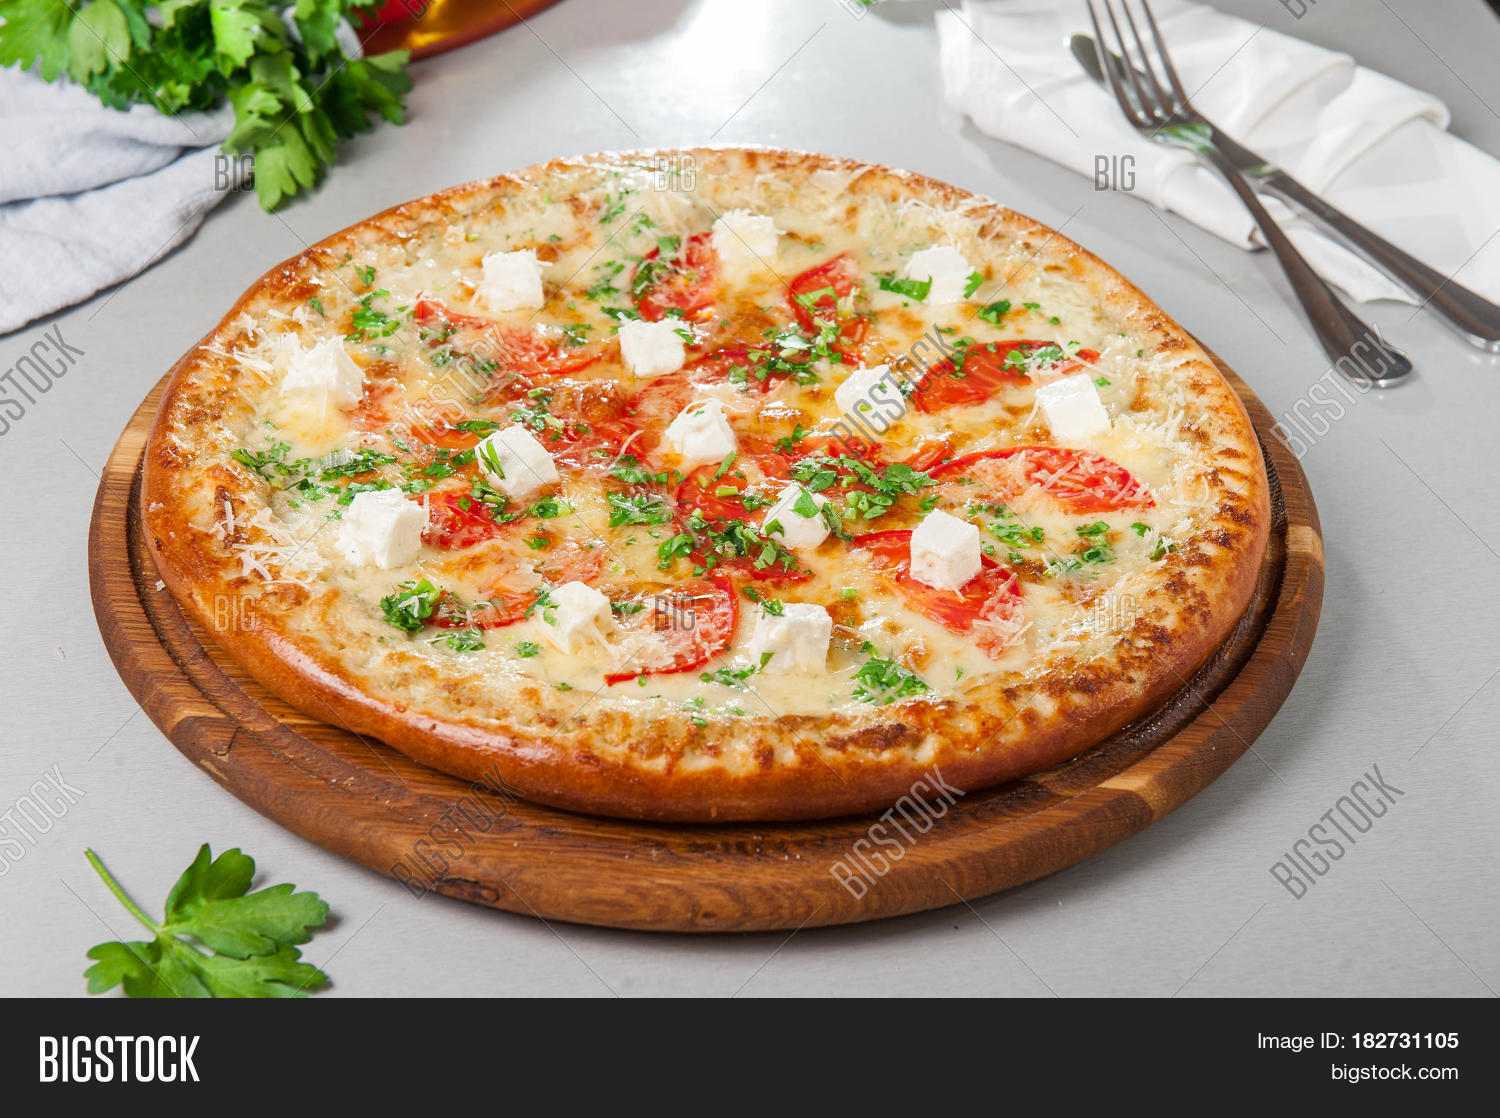 Lovely Four Cheese Pizza Quattro Fromaggi On A Rustic Wooden Board On The Table  With Ingridients.